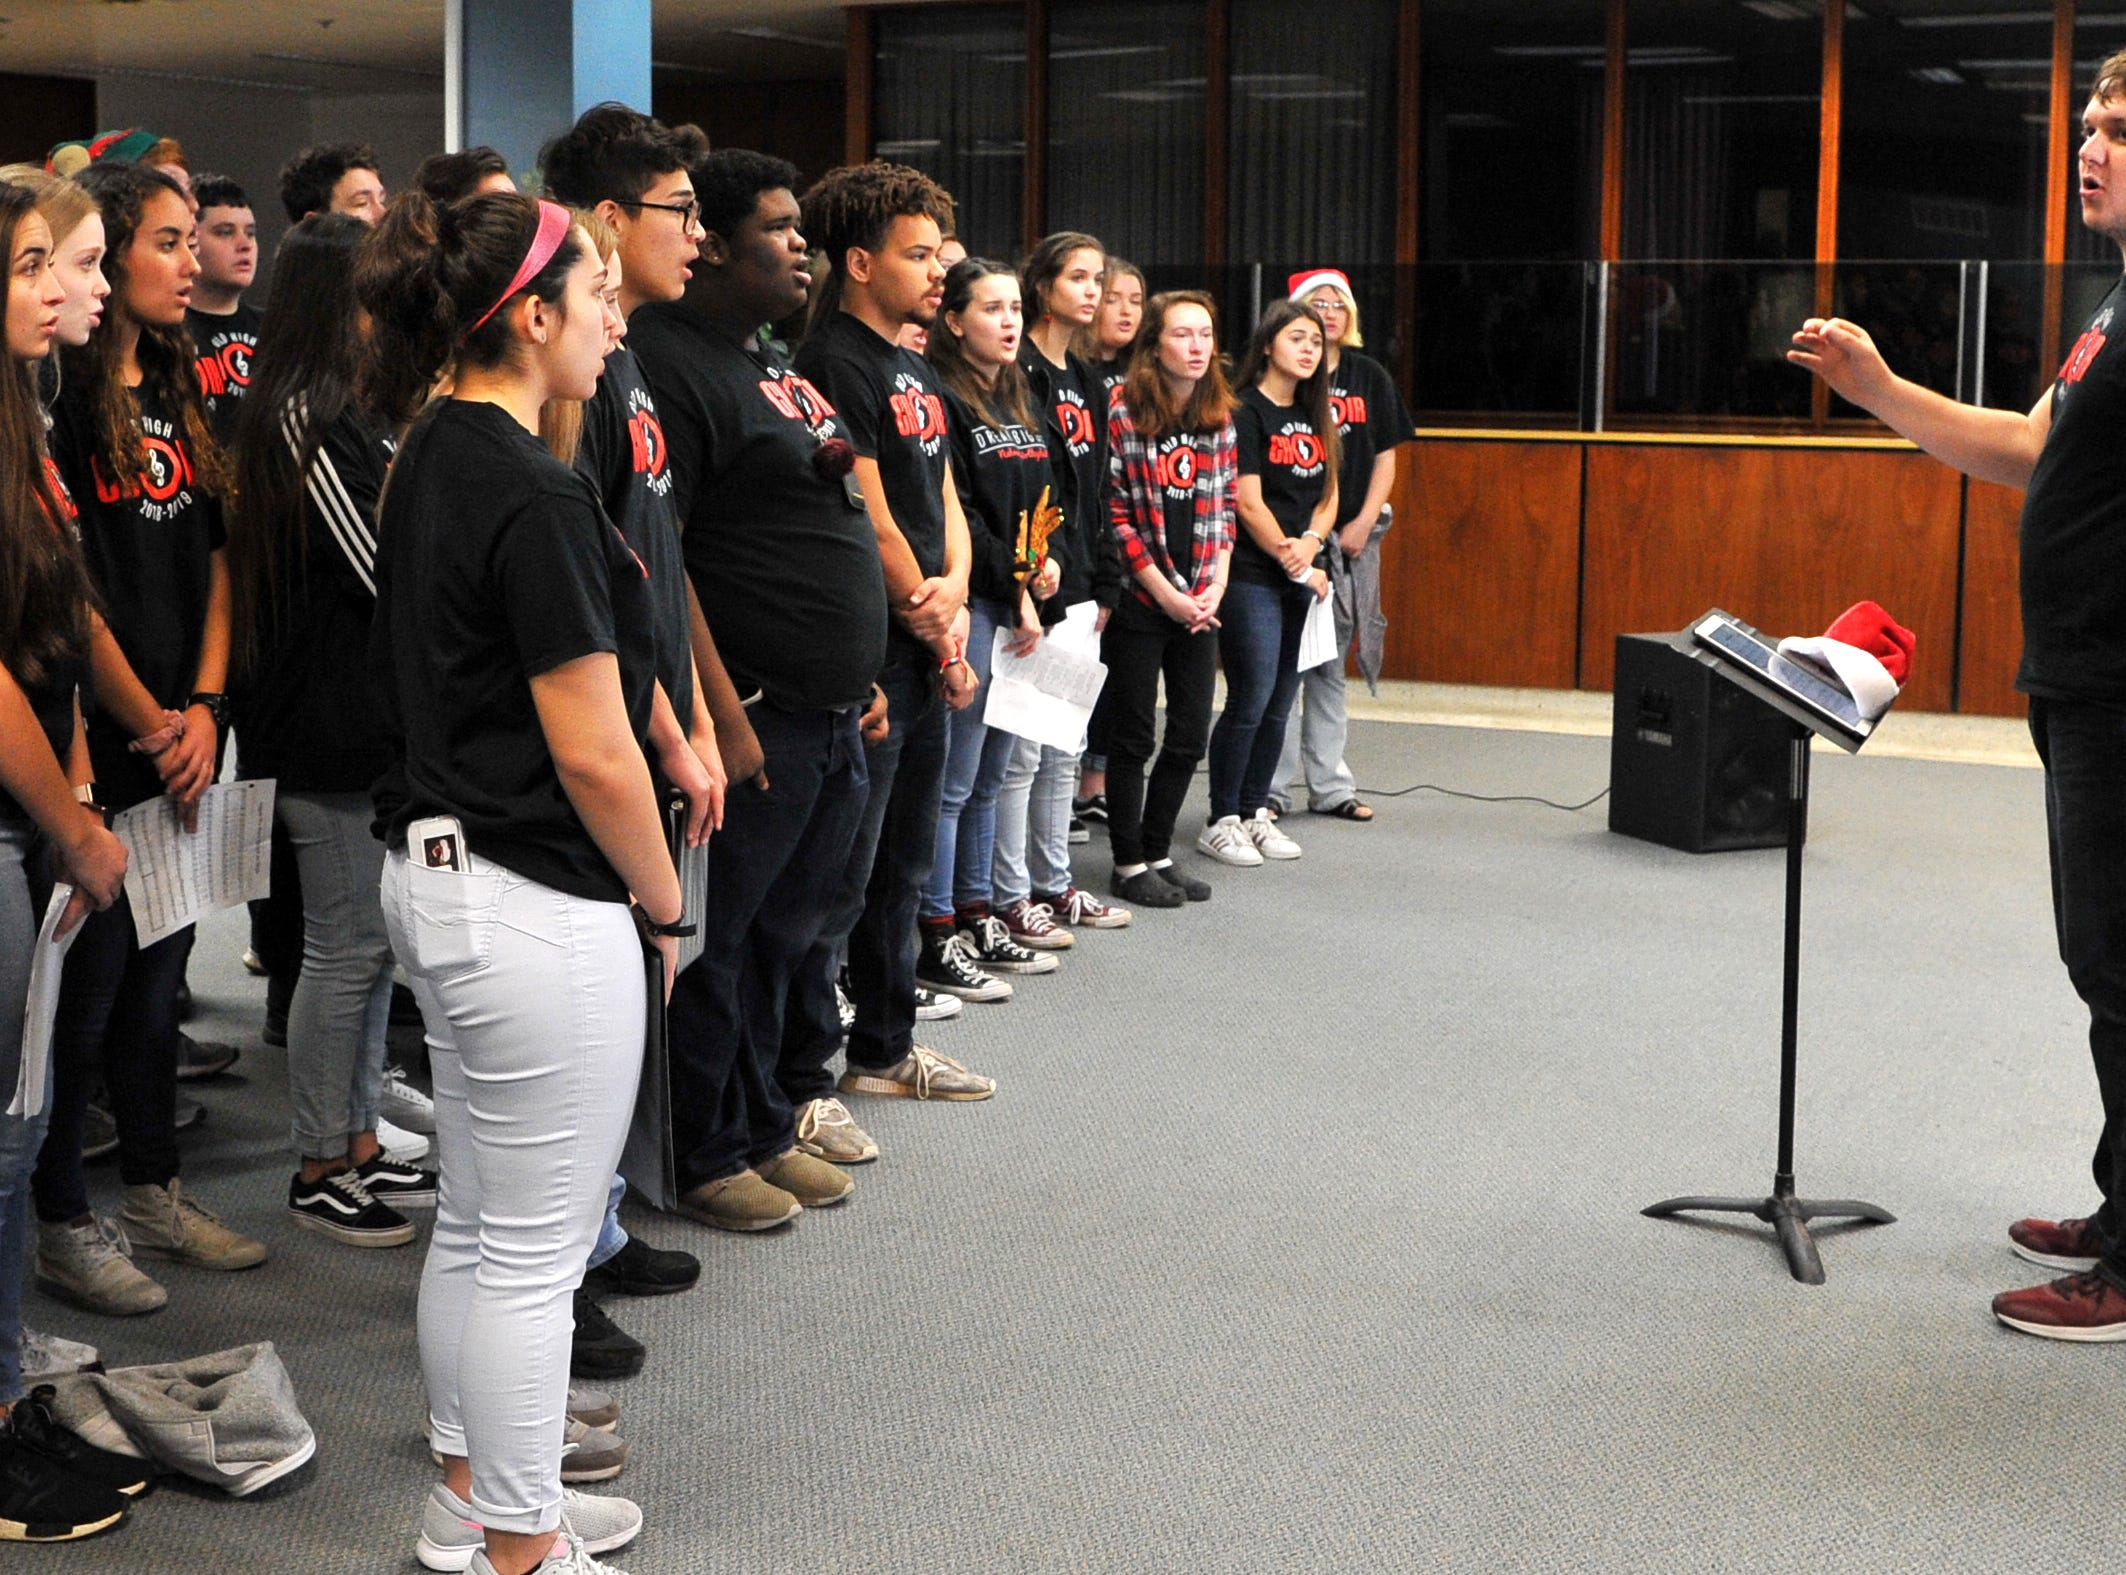 Students from the Wichita Falls High School choir made a stop in the Times Record News retail department to sing Christmas carols during their tour around town Thursday morning.